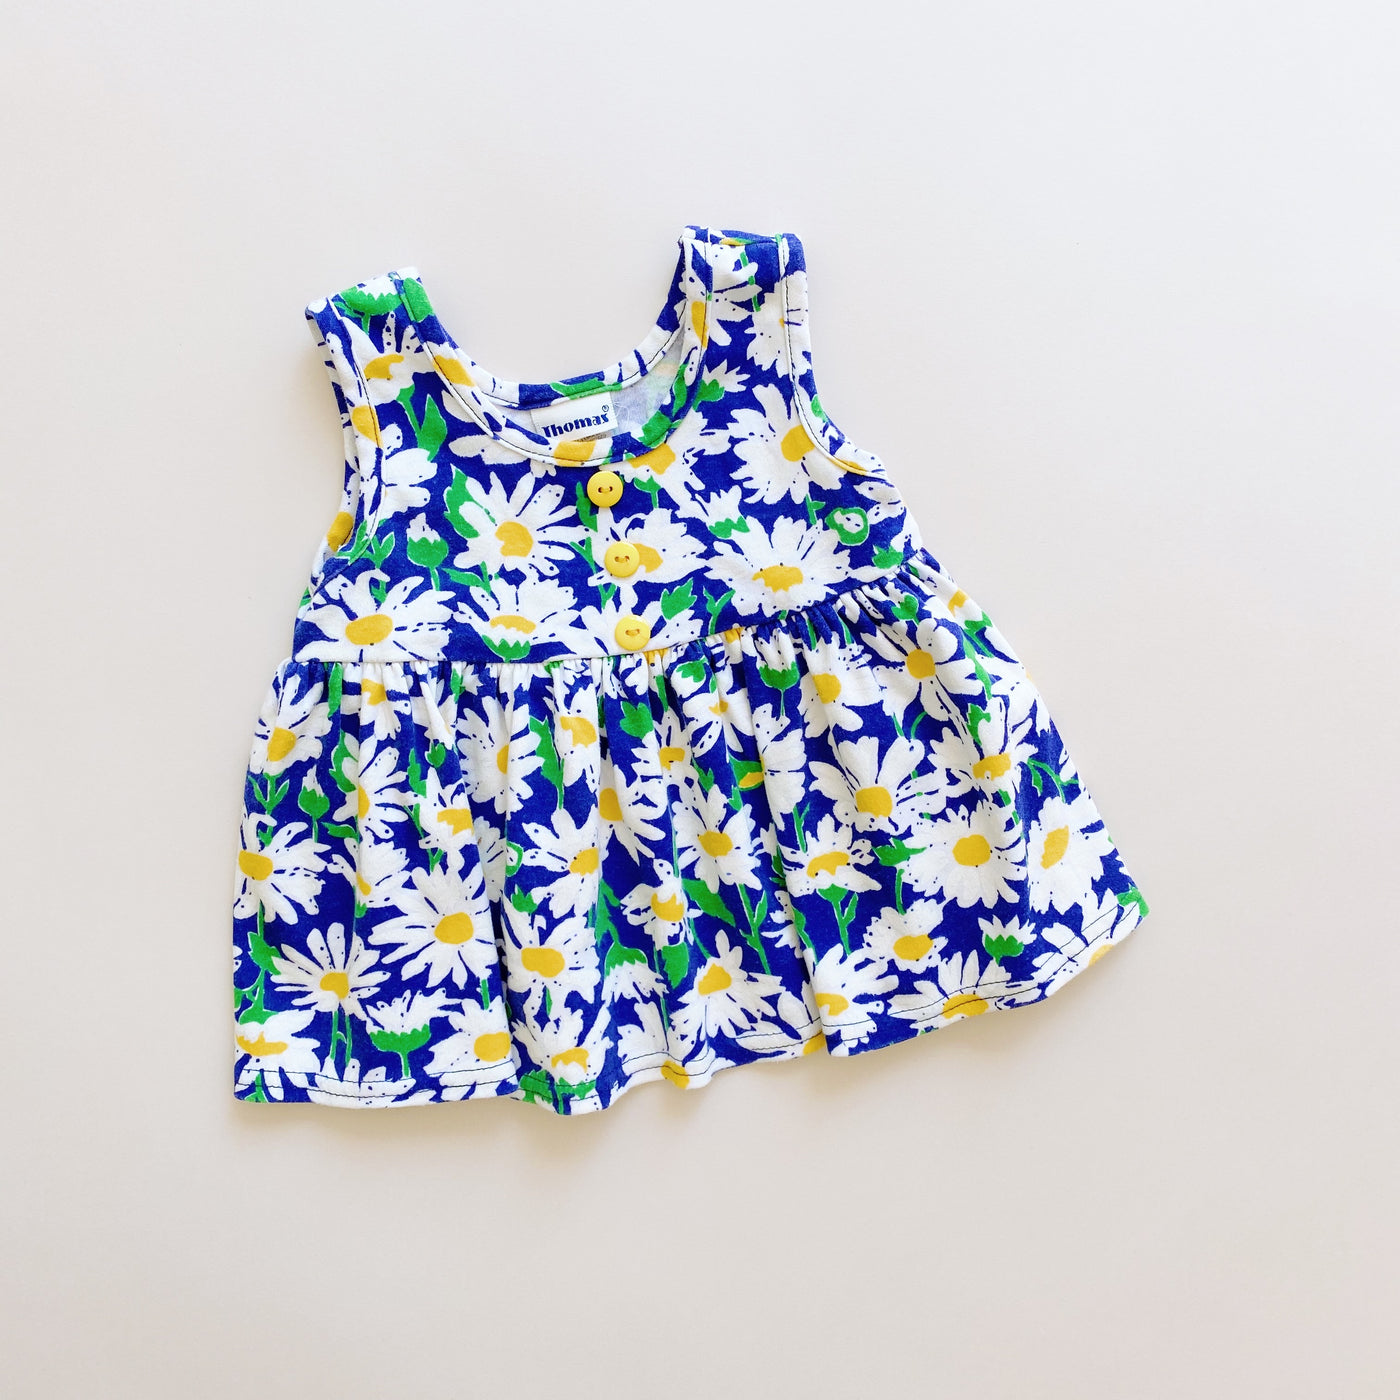 Vintage Daisy Dress / Size 12M